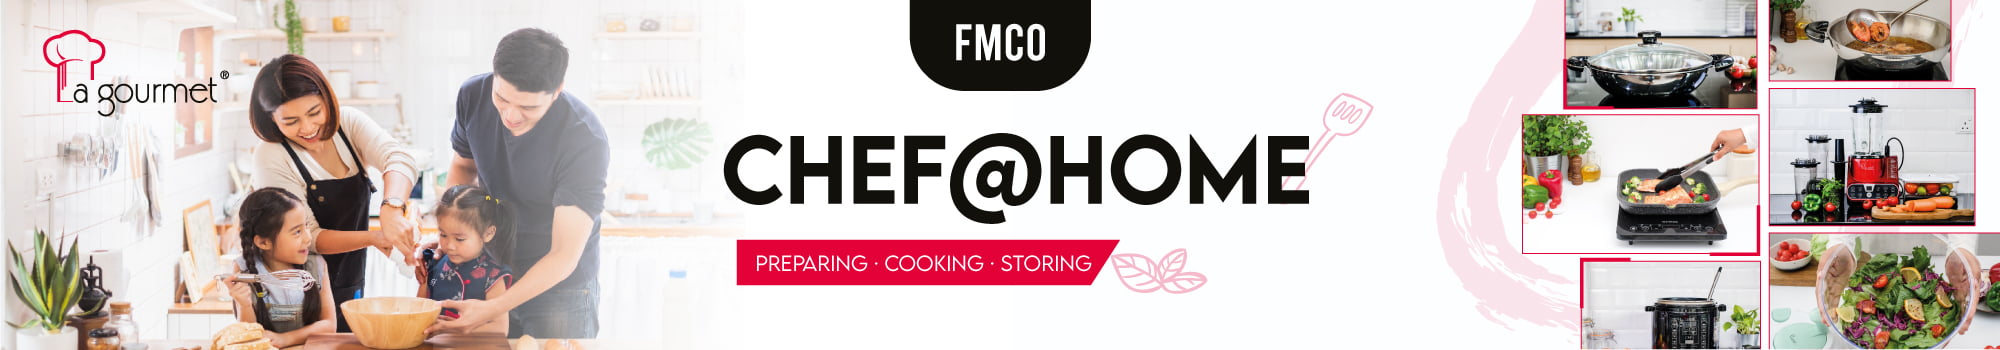 MCO-be-chef-at-home (1)